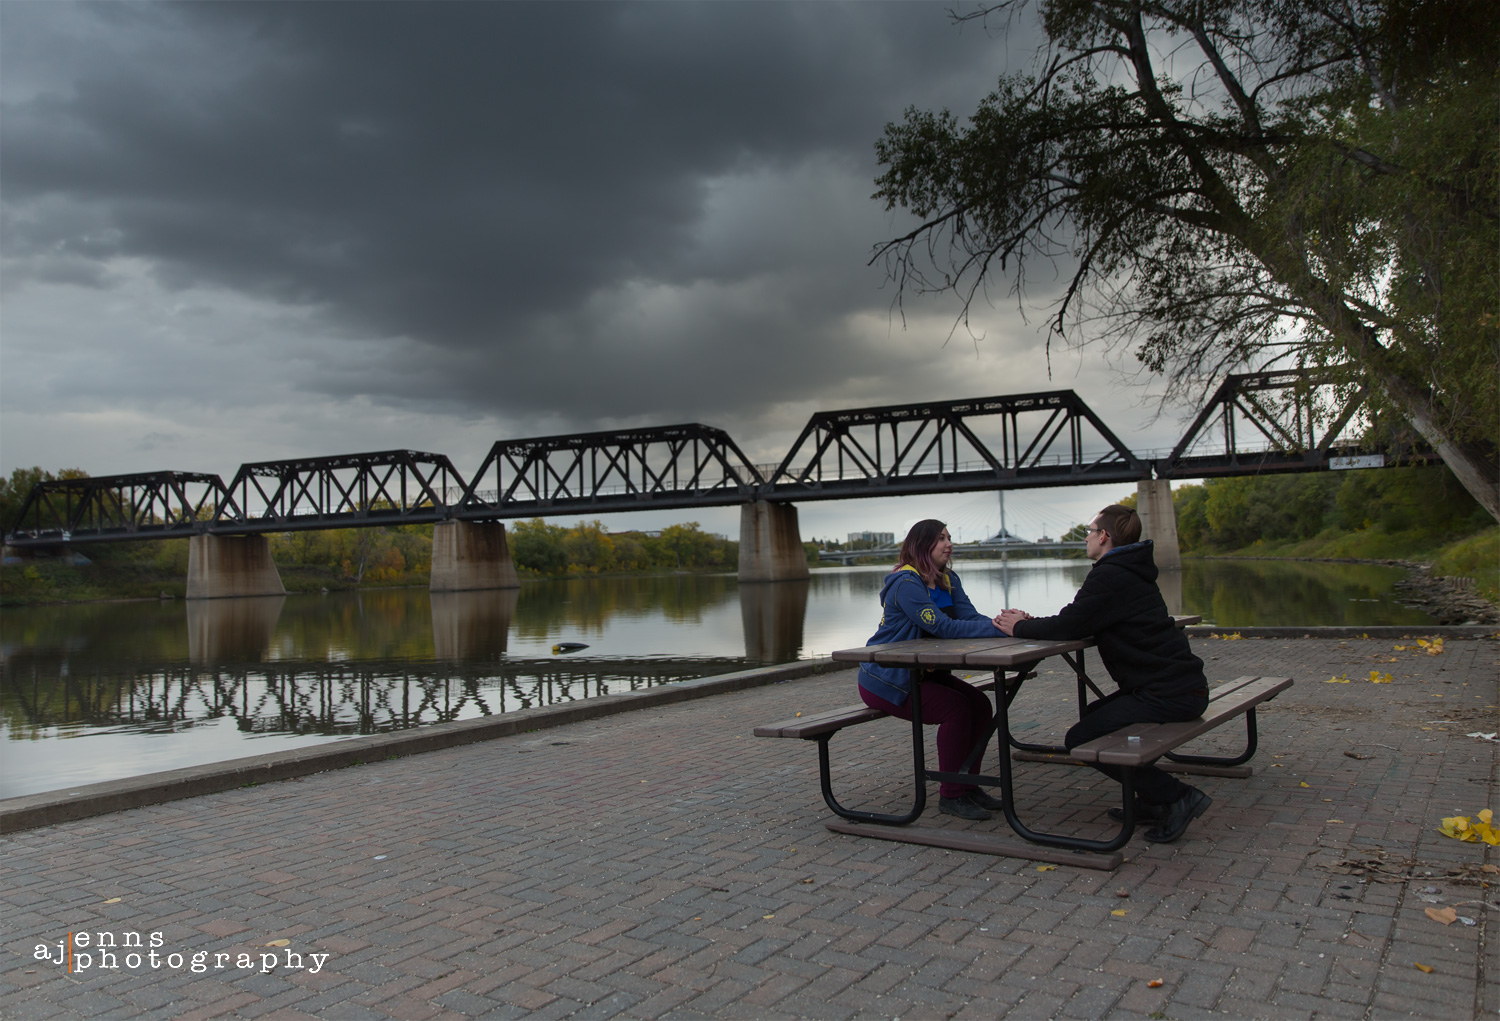 Sitting on a picnic table under some stormy clouds with a train bridge in the background